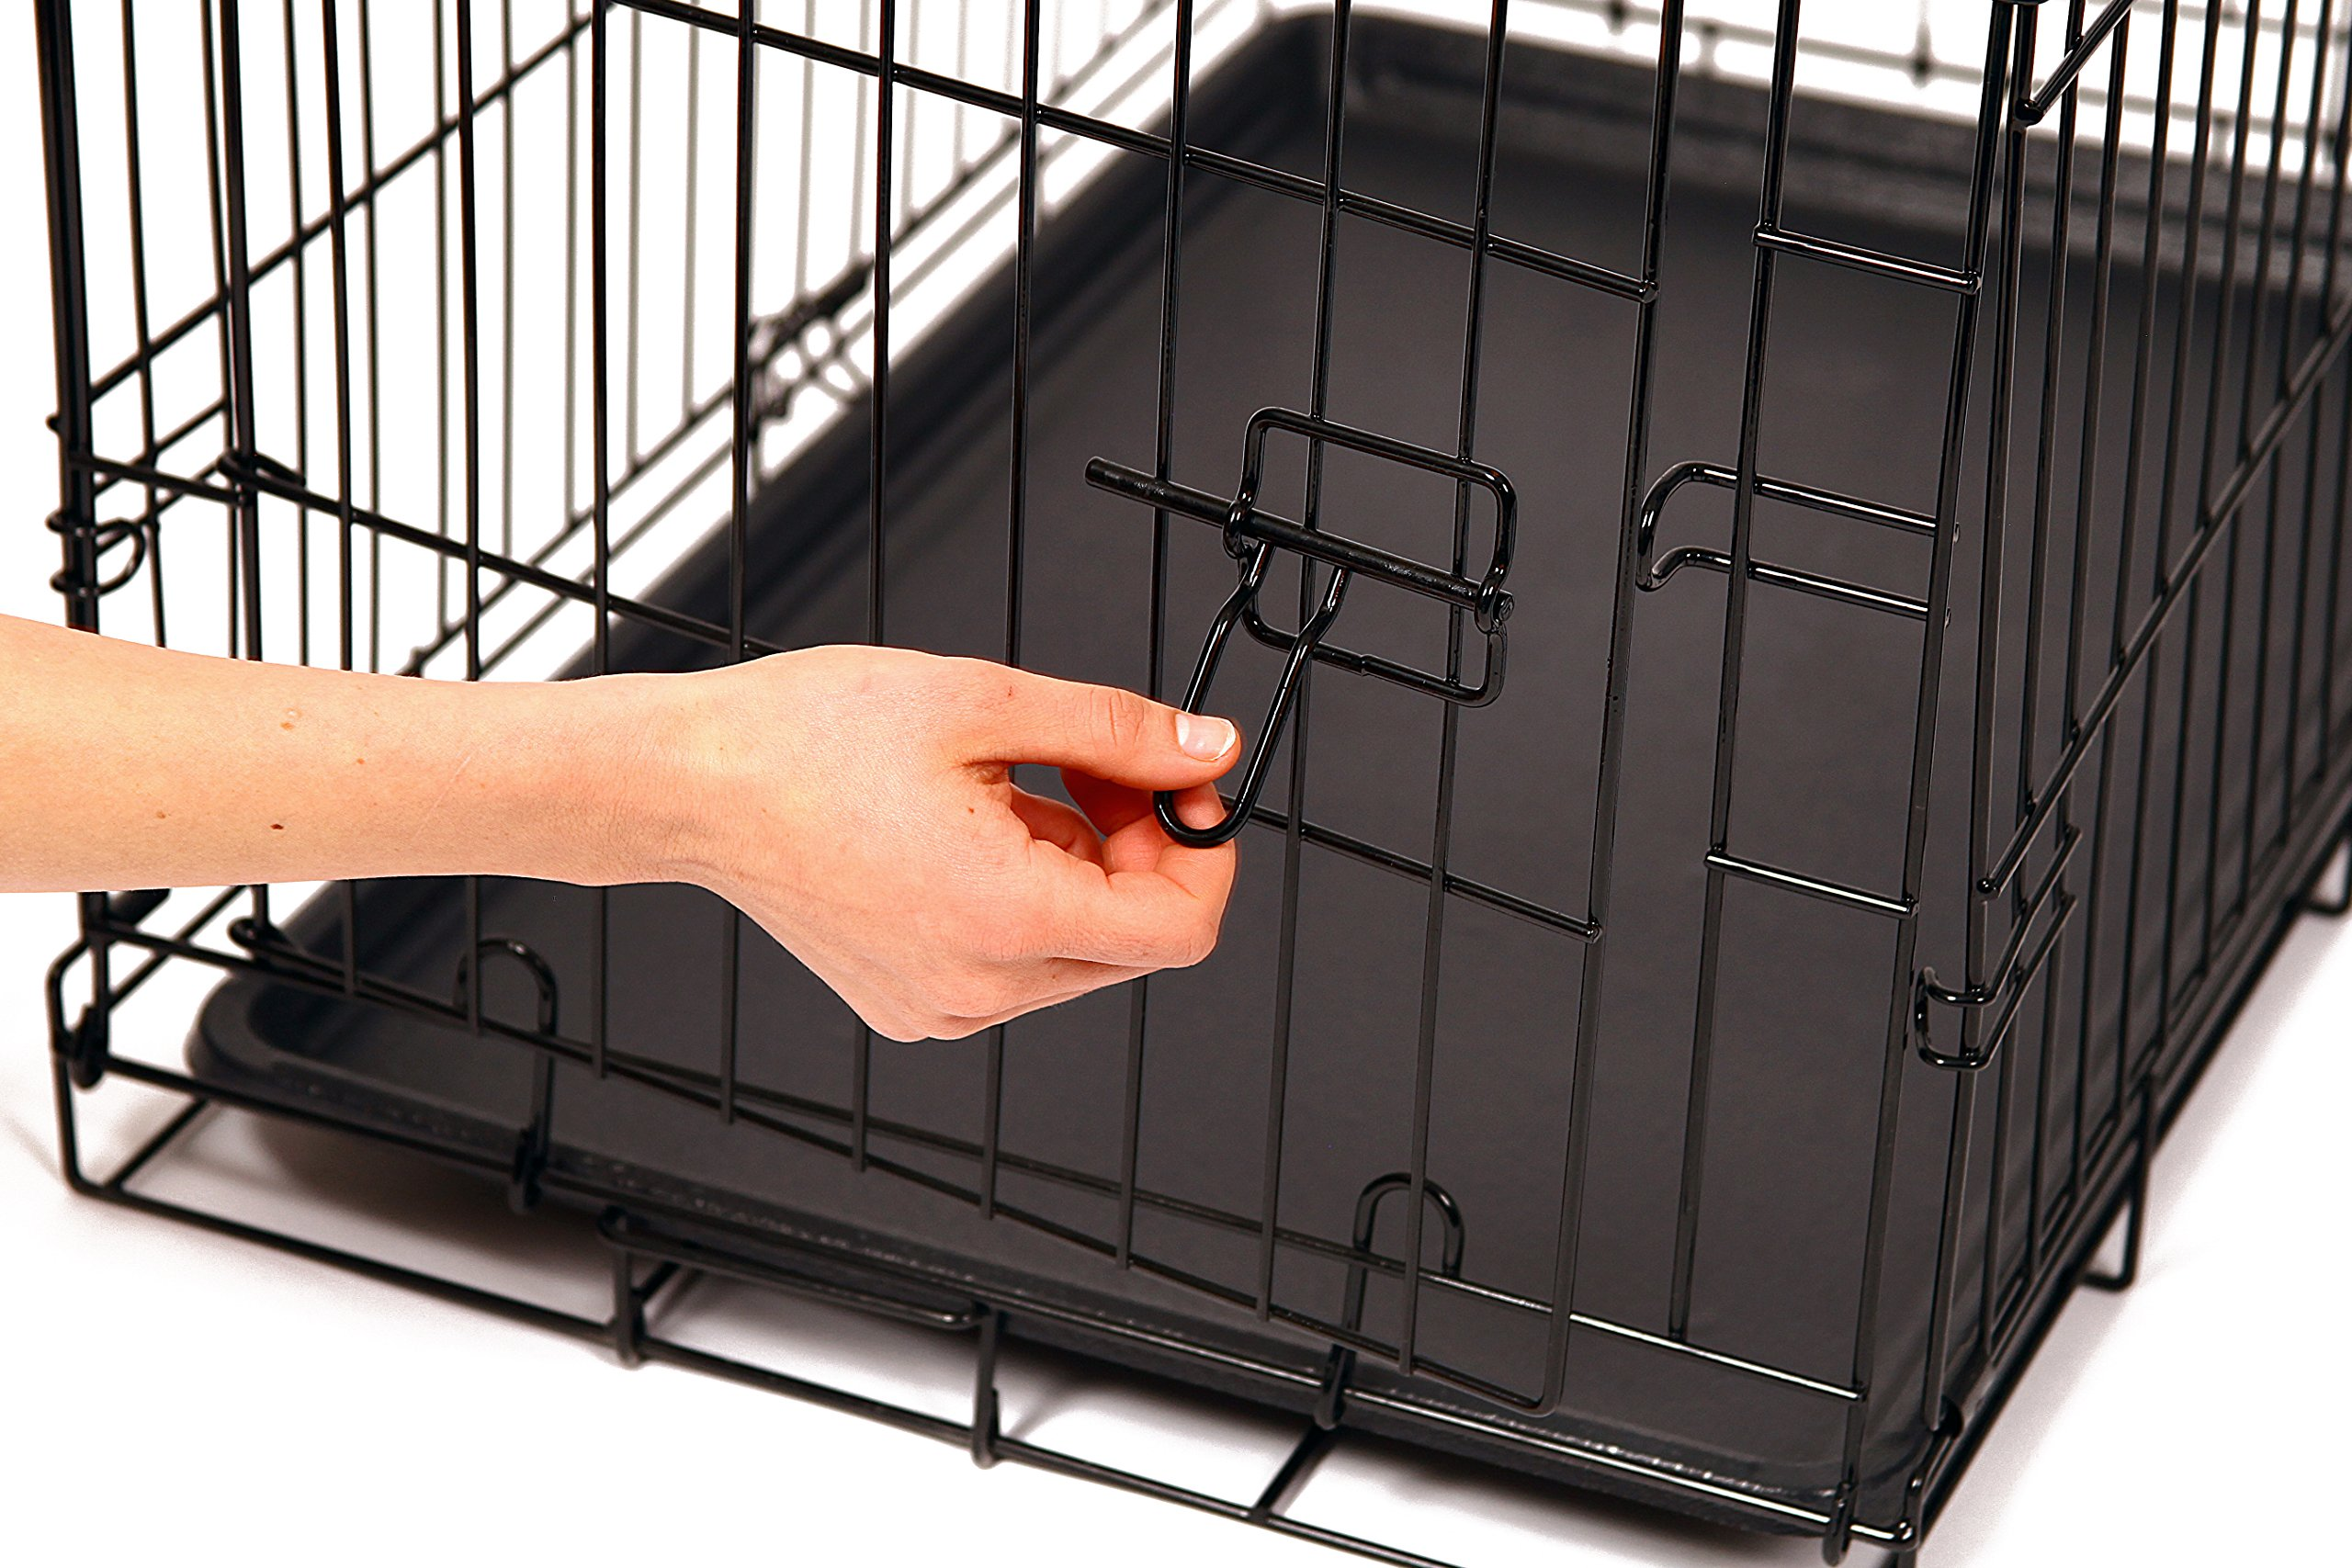 Carlson Pet Products Secure and Foldable Single Door Metal Dog Crate, Medium by Carlson Pet Products (Image #2)